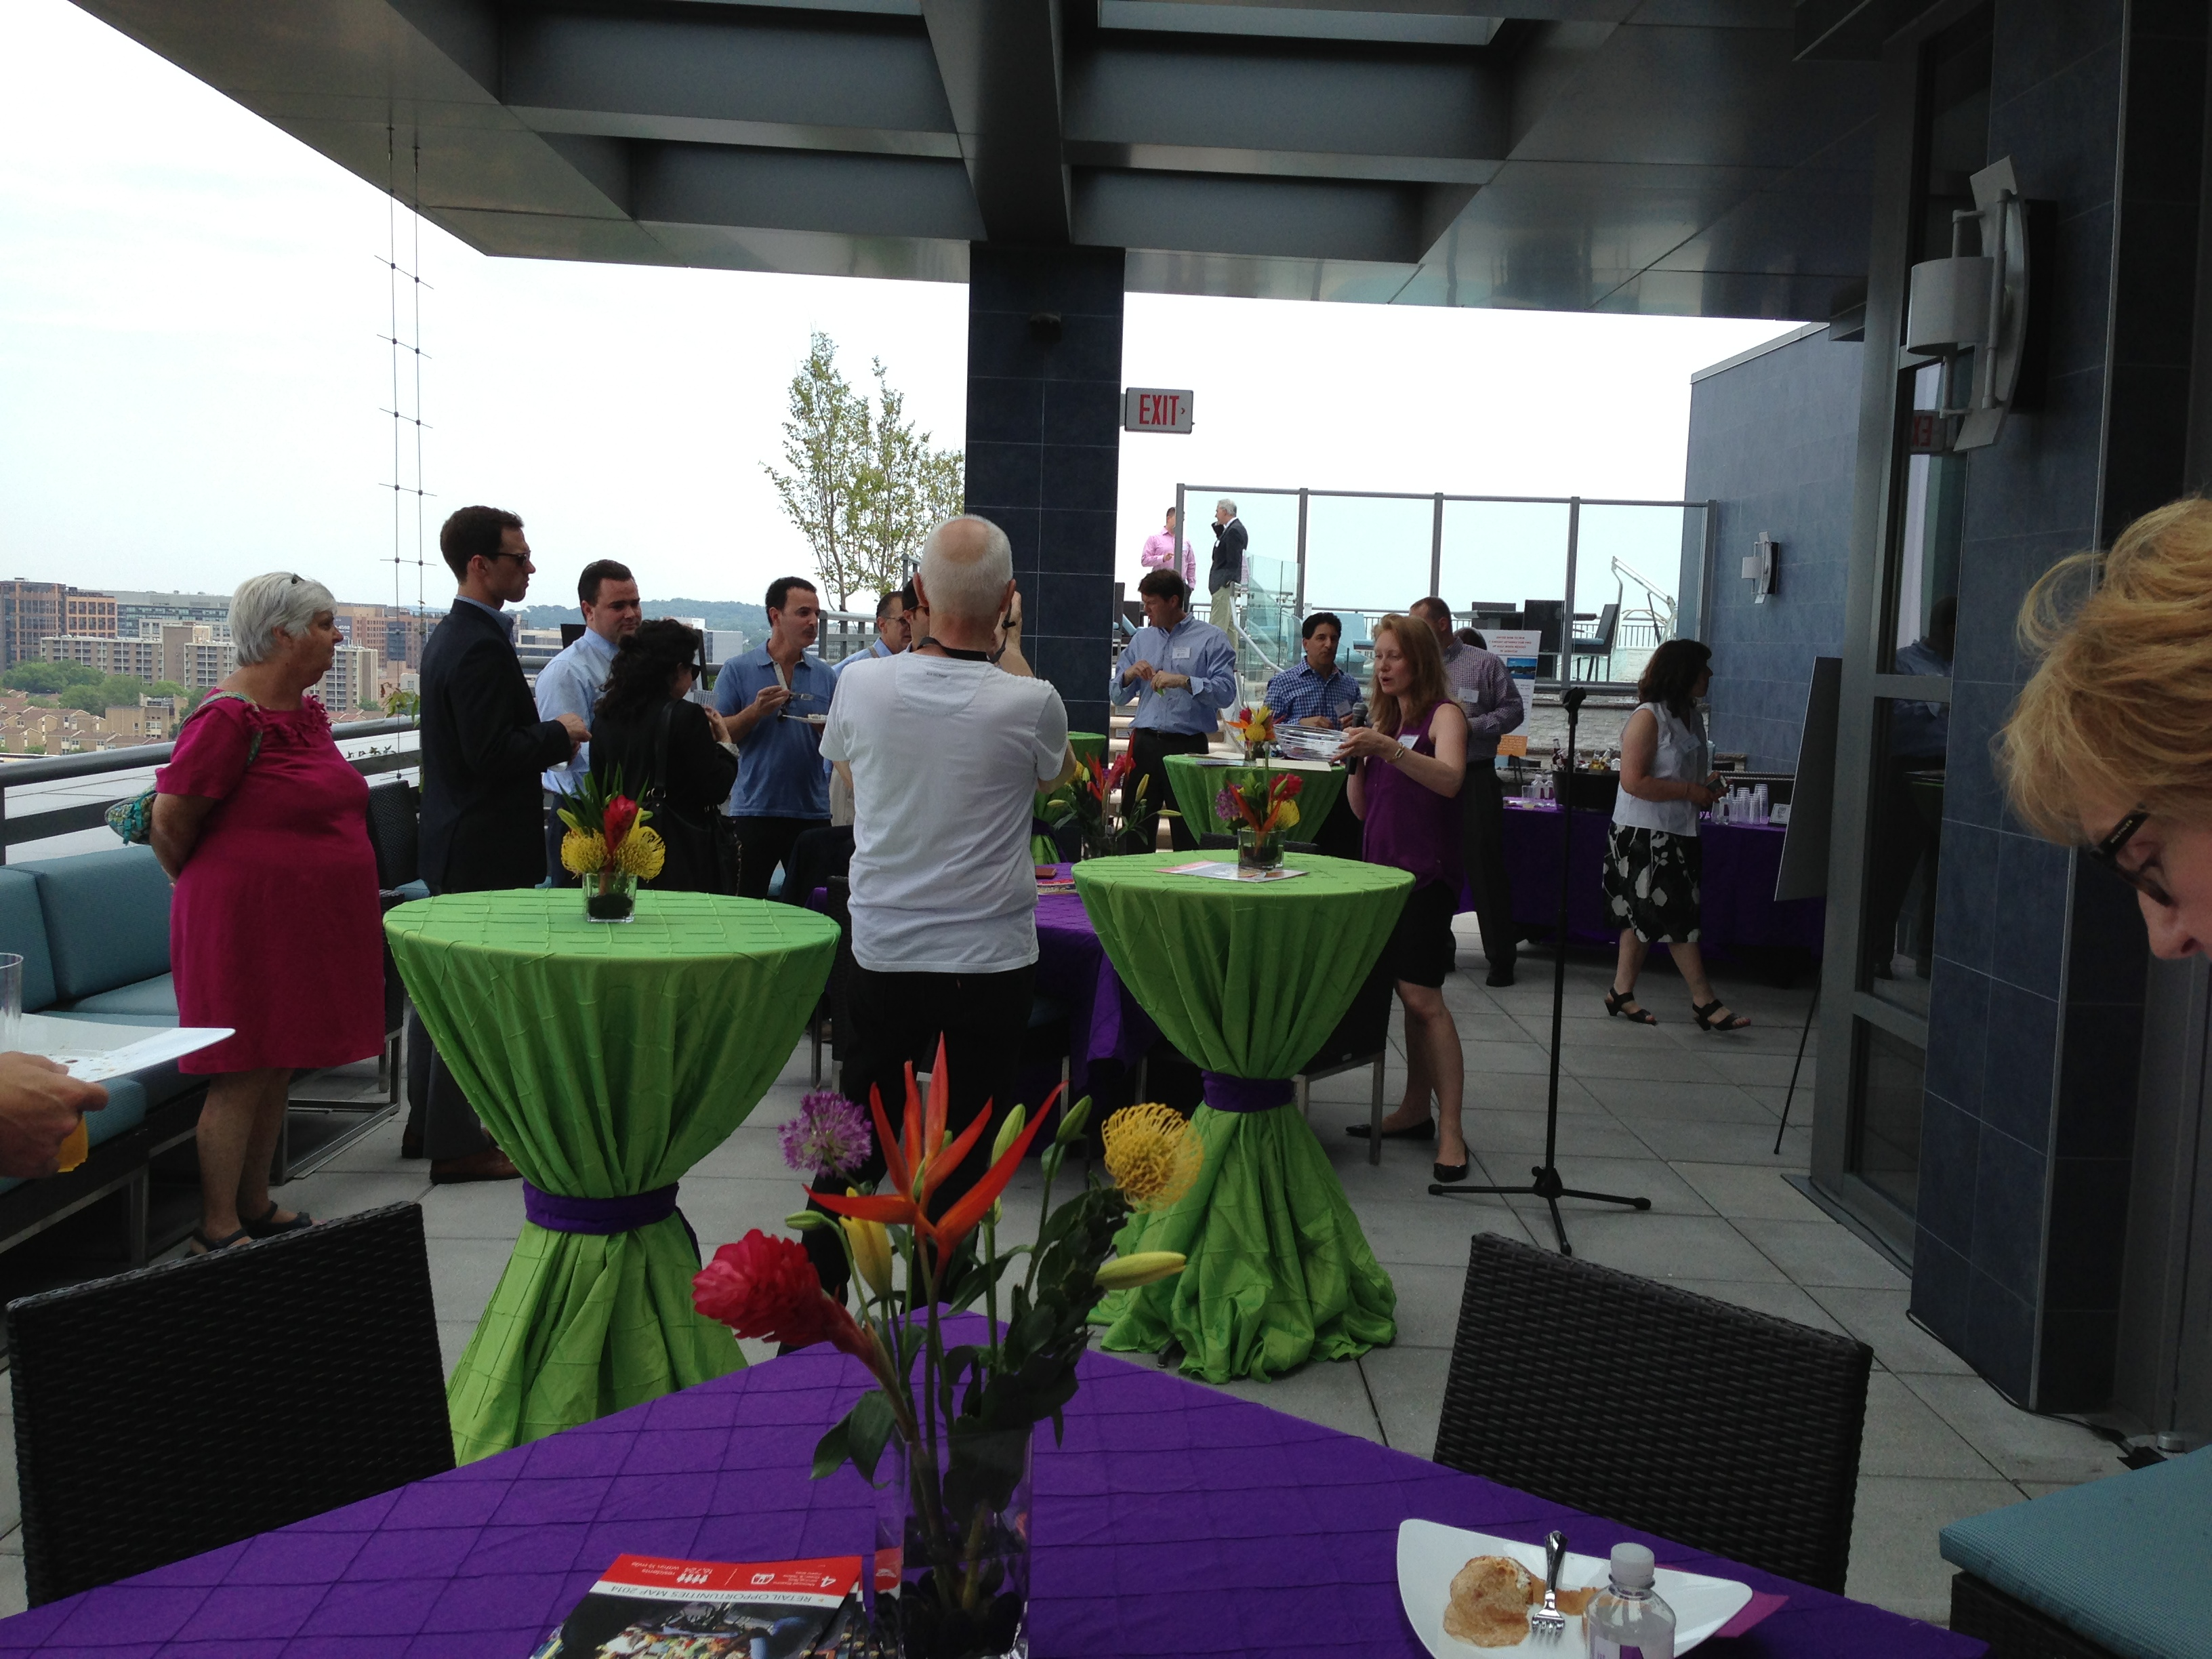 outdoor corporate broker event